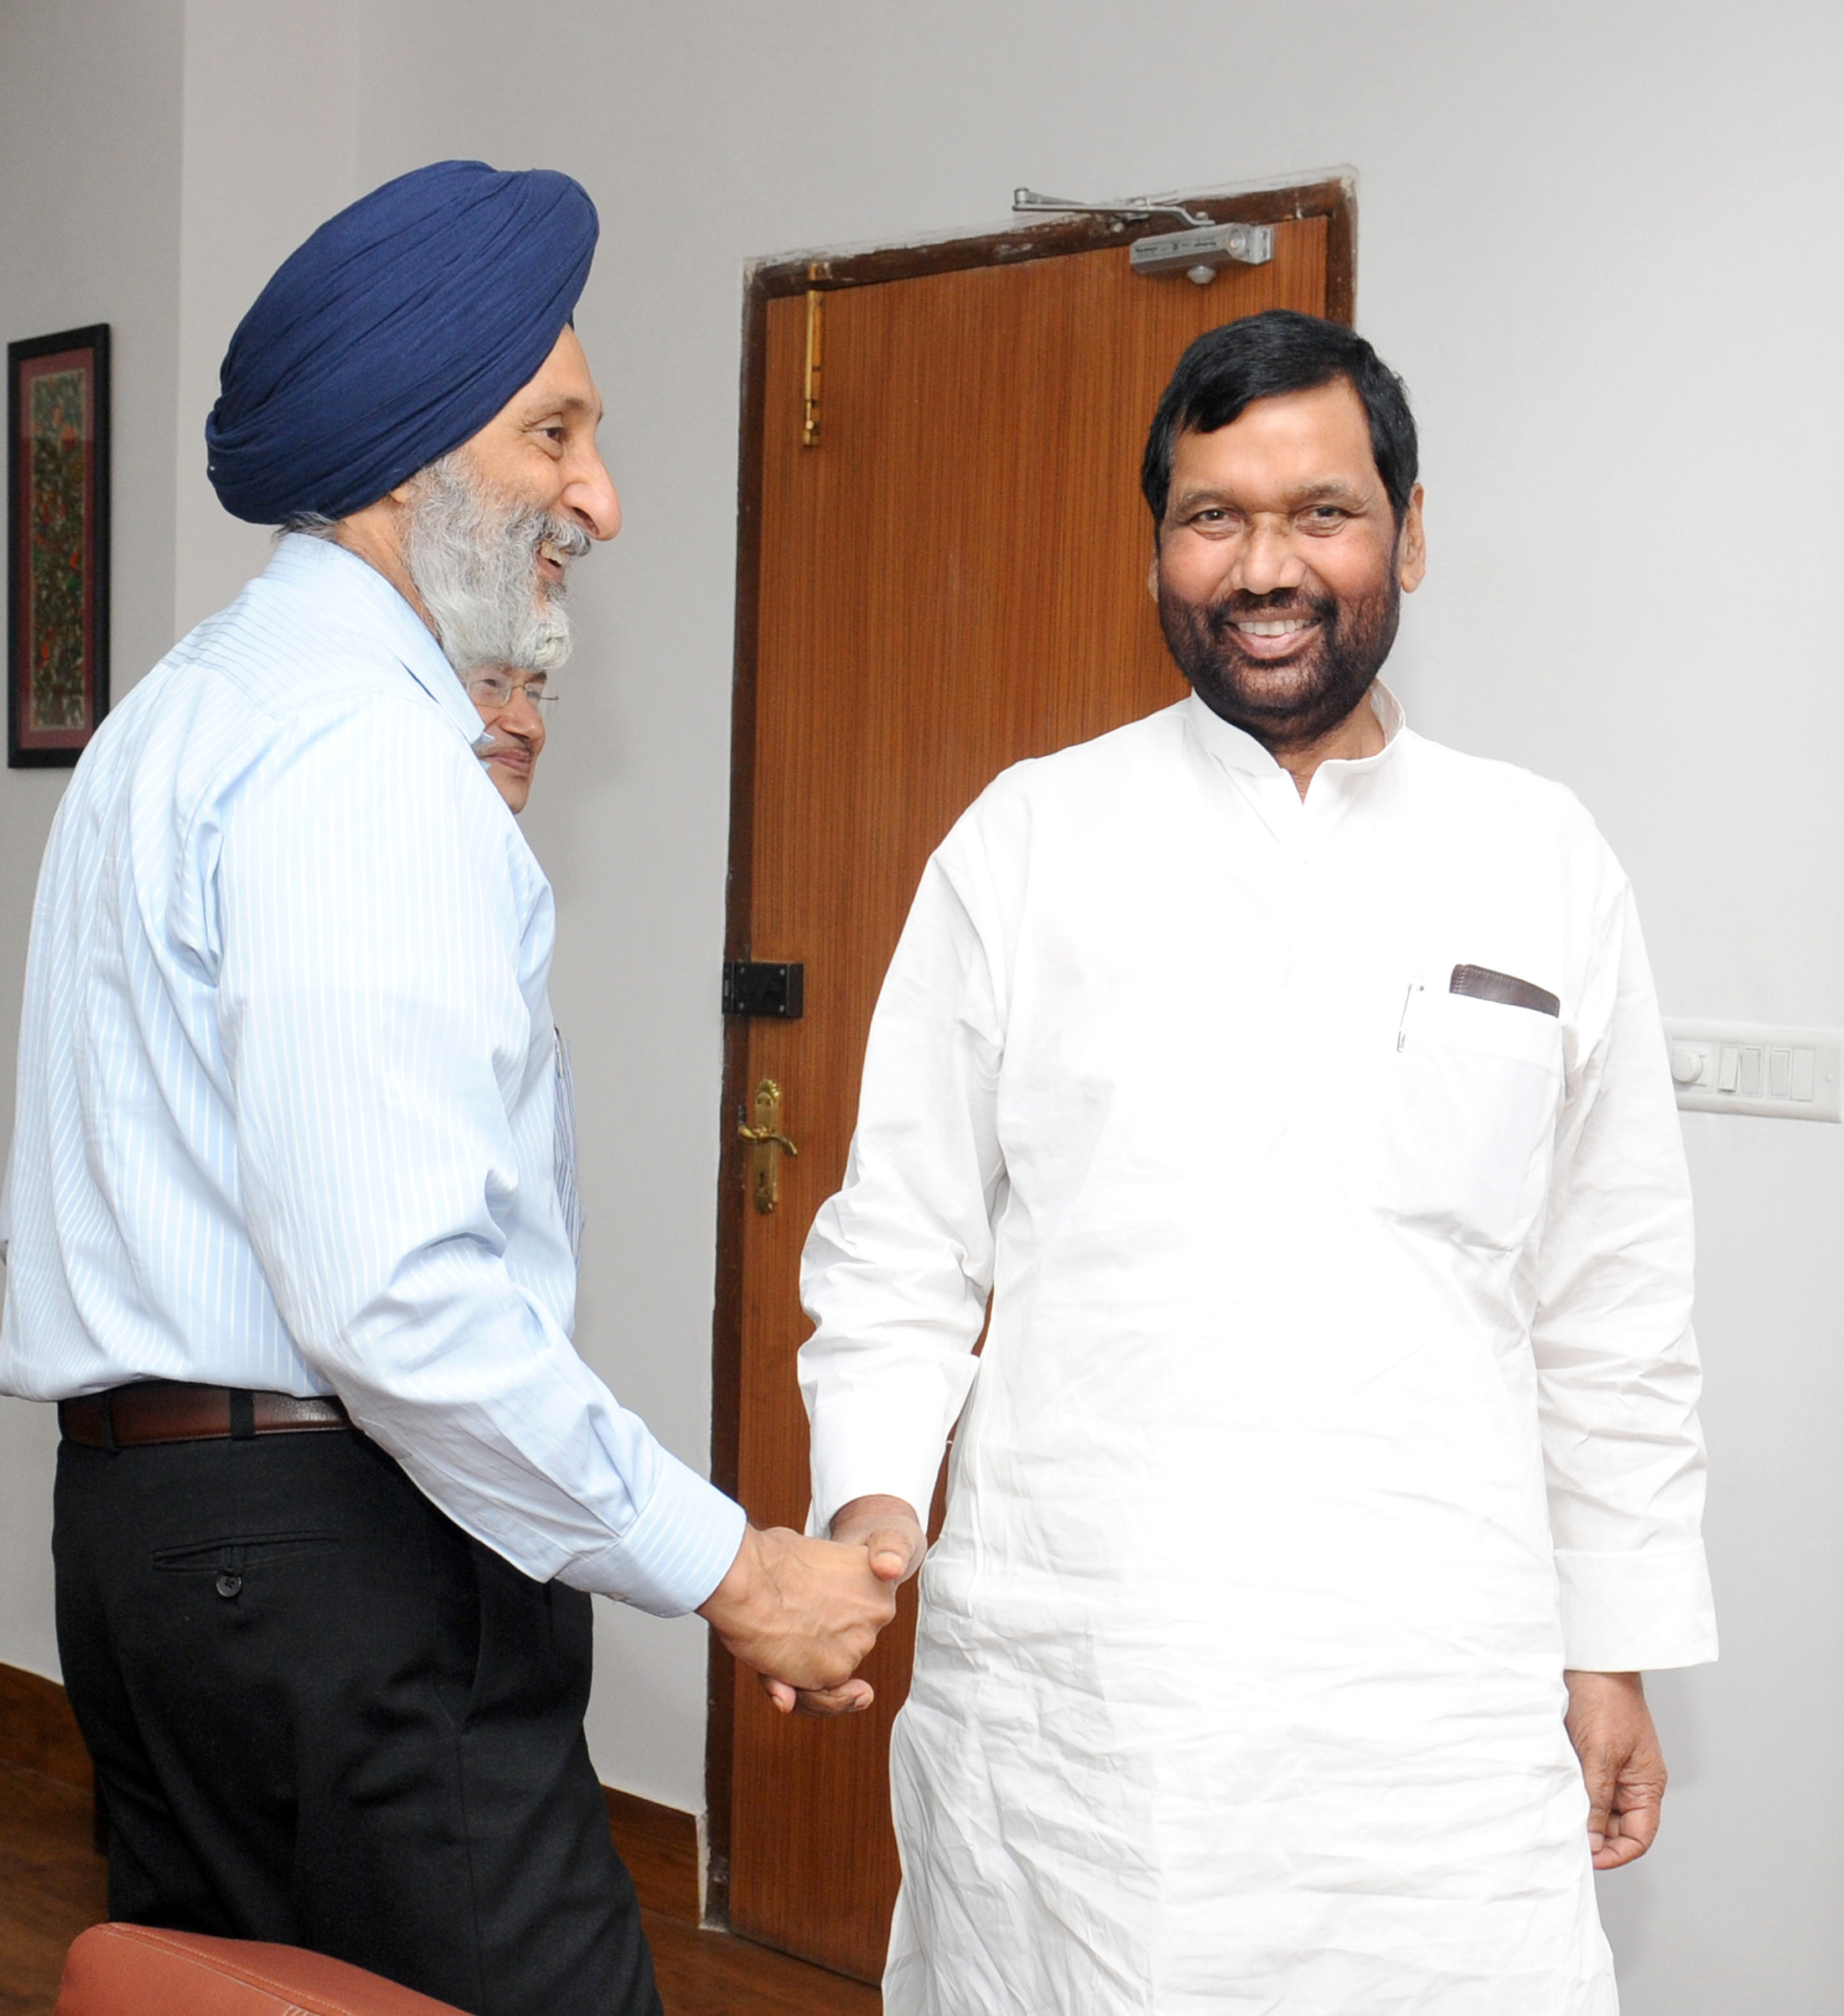 File The Food Civil Supplies Minister Punjab Shri Adaish Partap Singh Kairon Calling On The Union Minister For Consumer Affairs Food And Public Distribution Shri Ram Vilas Paswan In New Delhi On